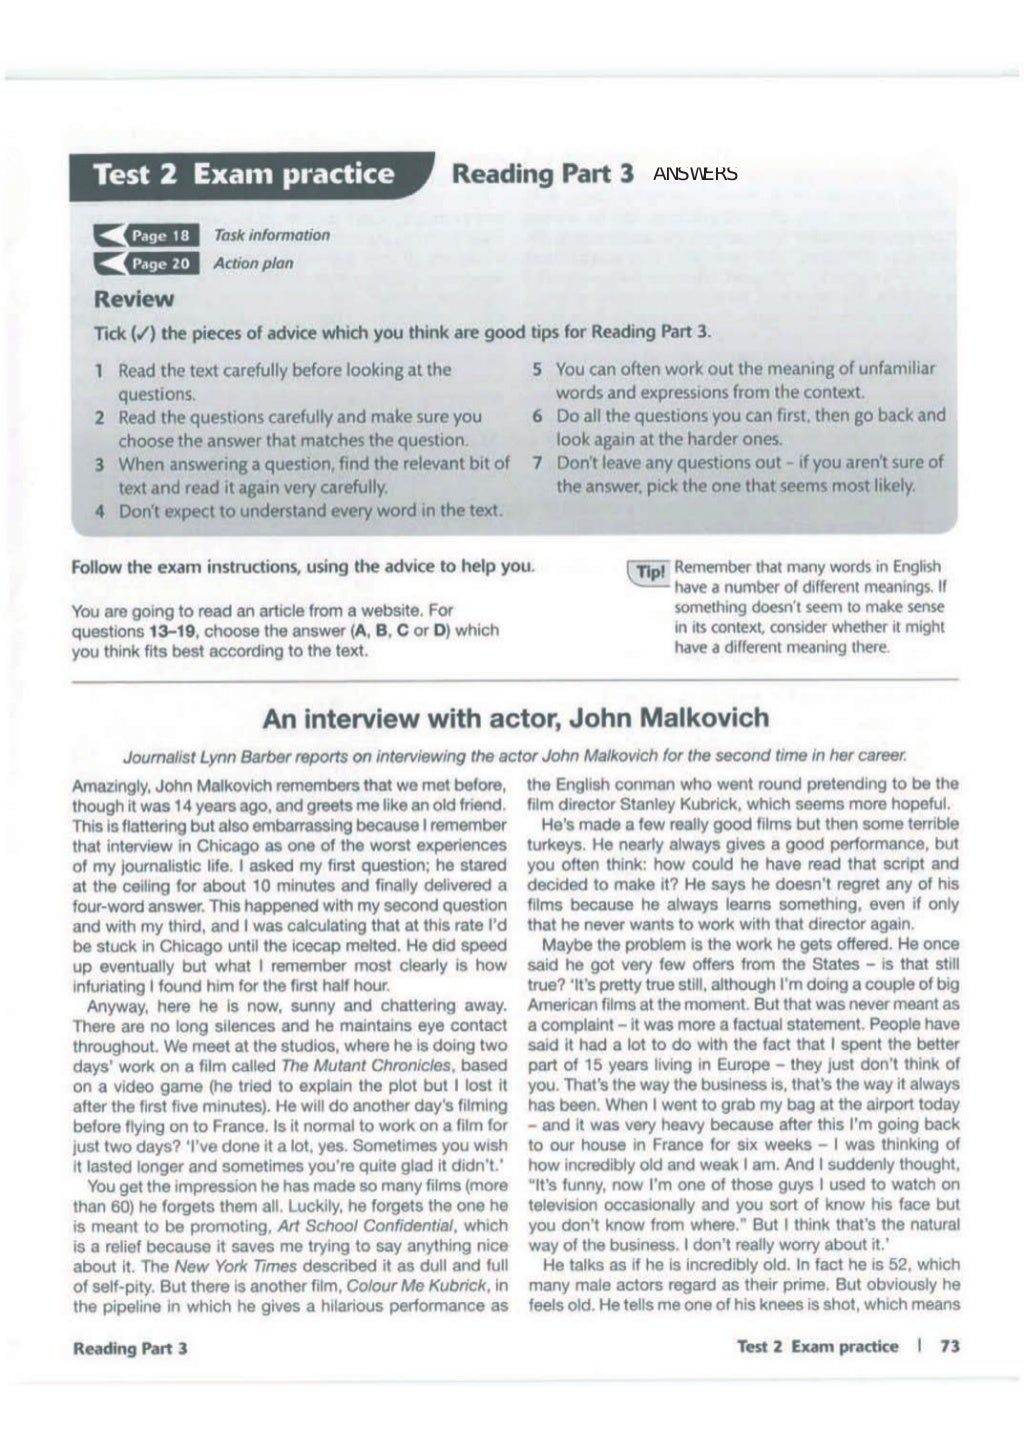 Advanced trainer 6 practice tests with answers book4joy (1) page 74